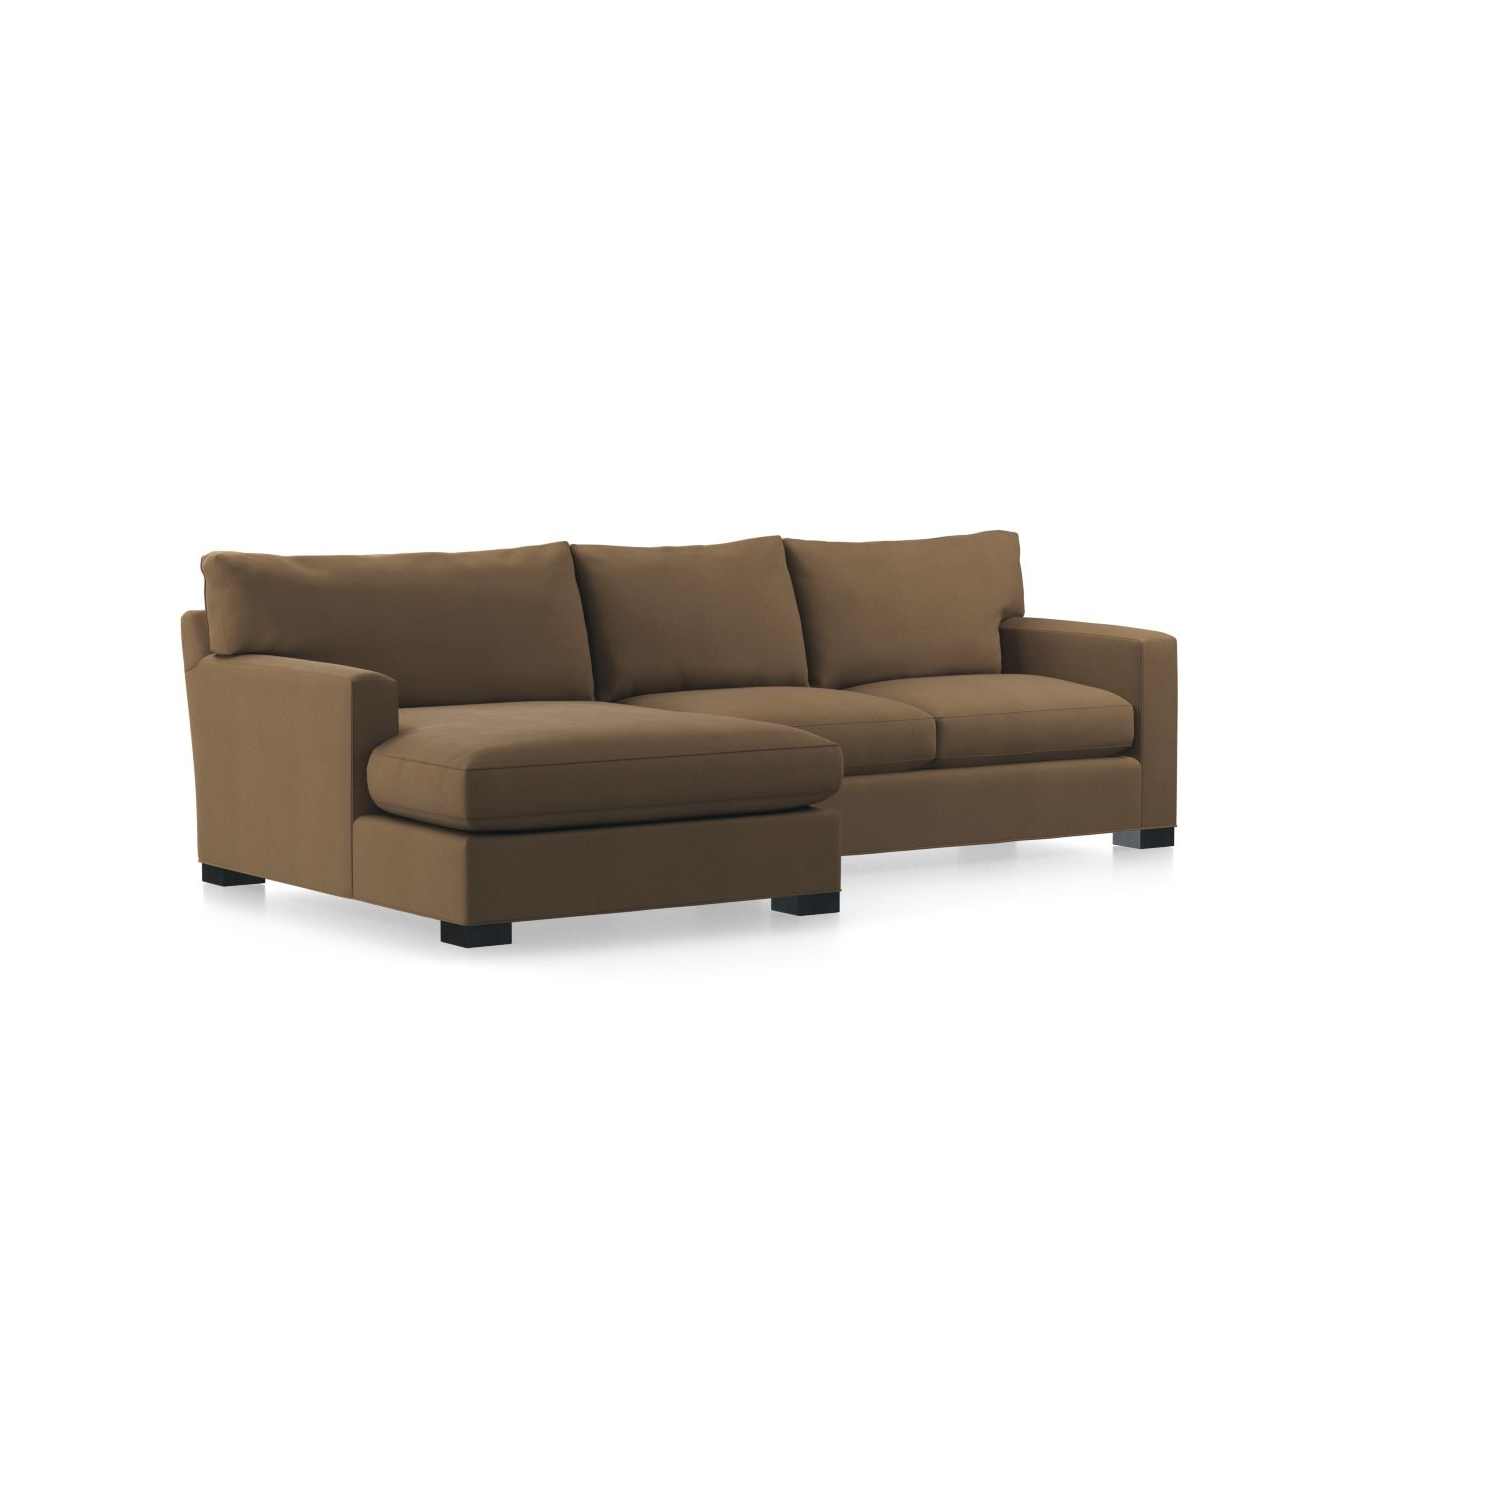 Axis Ii 2 Piece Right Arm Double Chaise Sectional Sofa In Axis With Most Up To Date Angled Chaise Sofas (View 11 of 20)